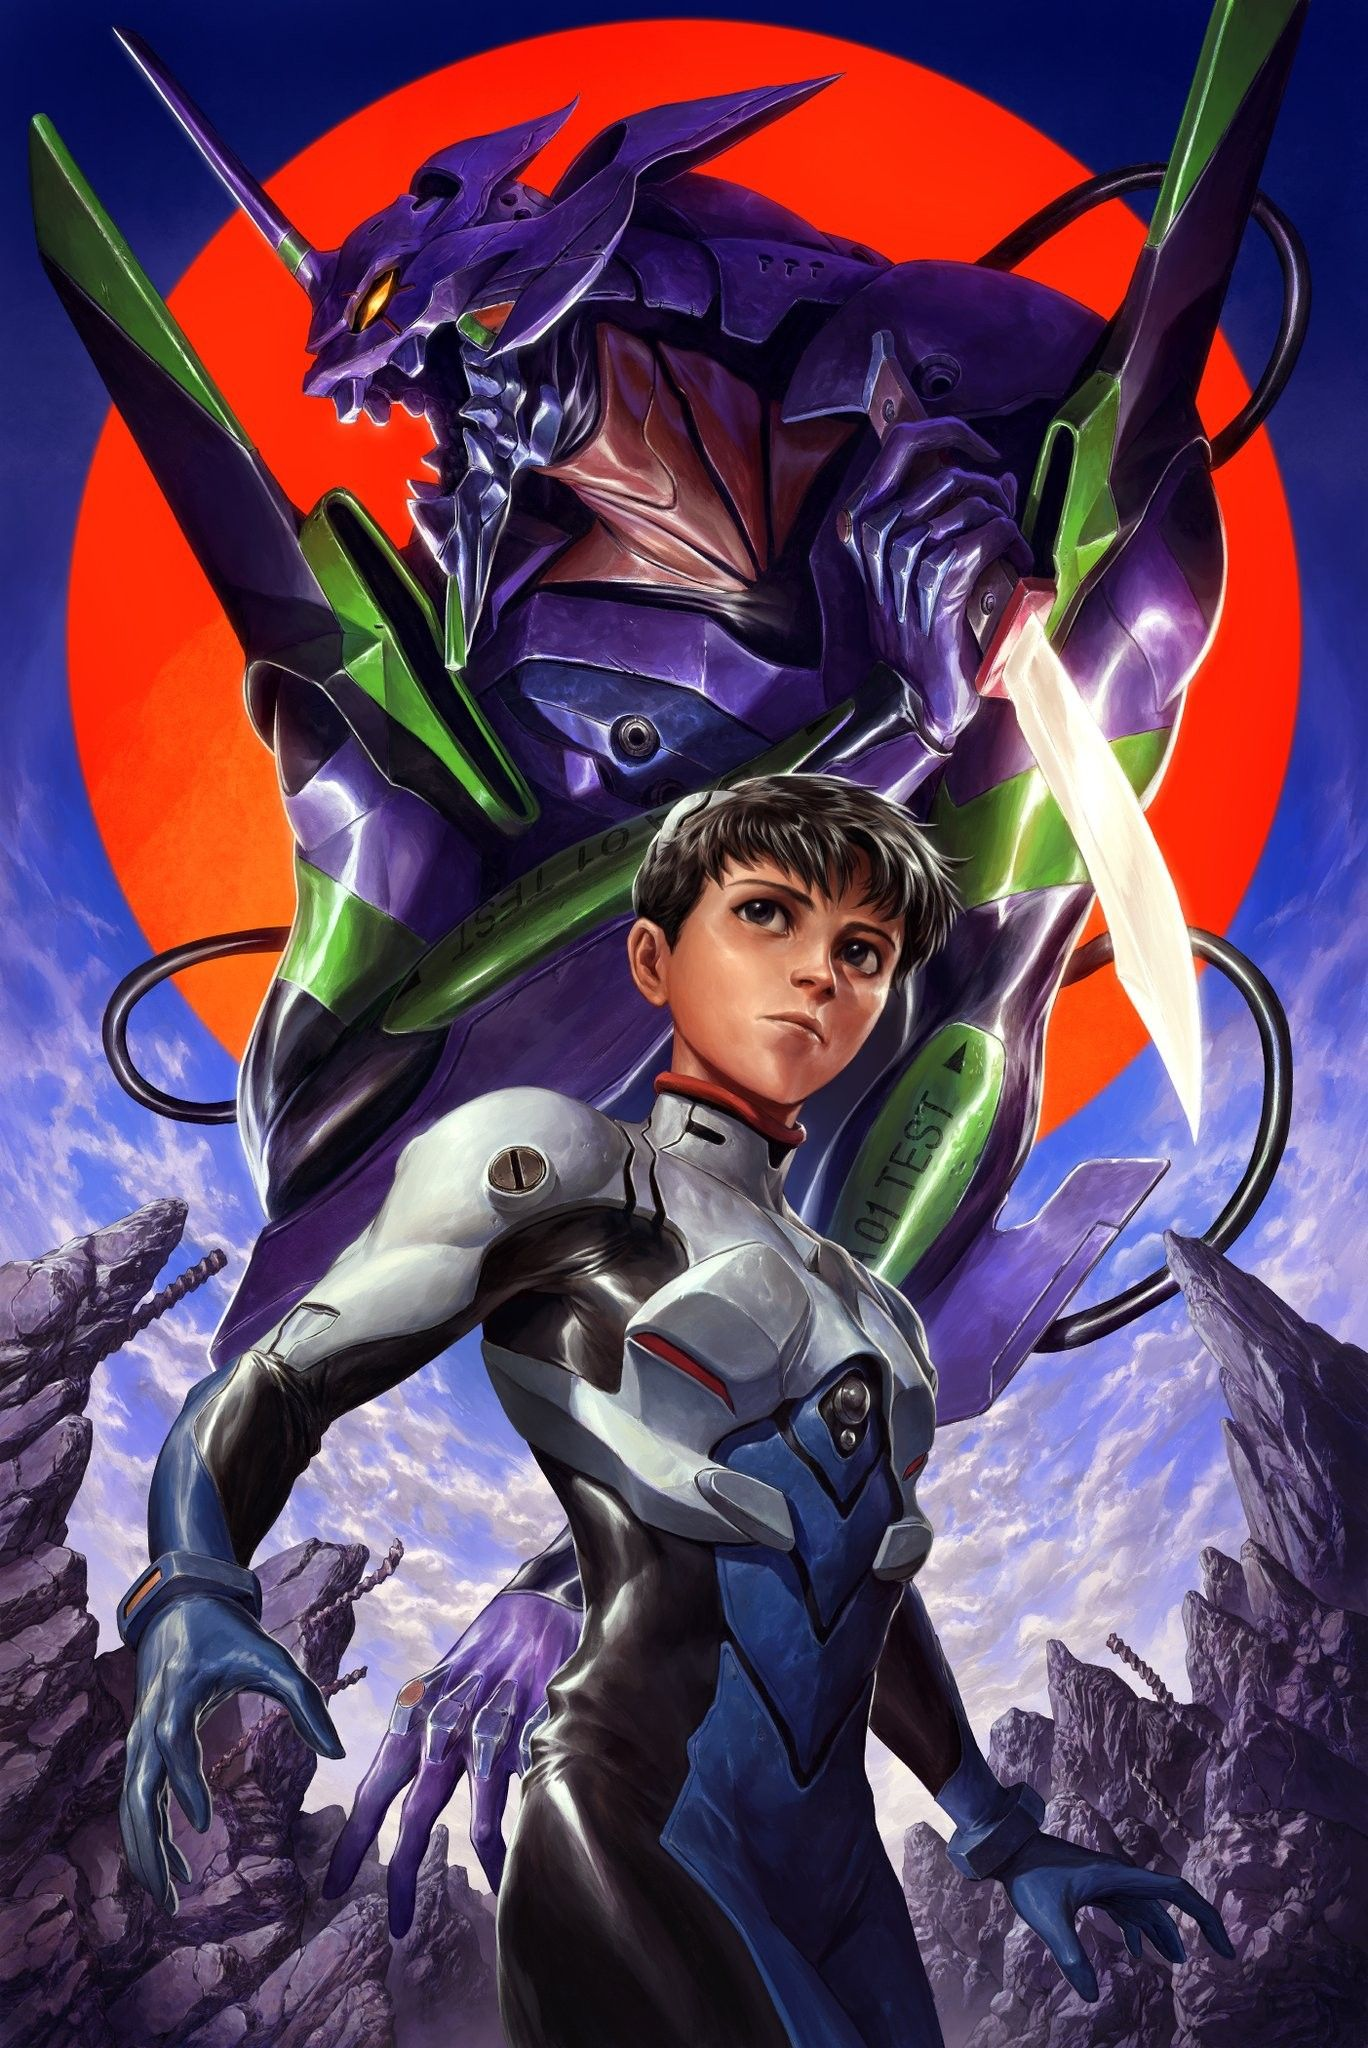 Pin By Anubes On Robot In 2020 Neon Genesis Evangelion Evangelion Recent Anime